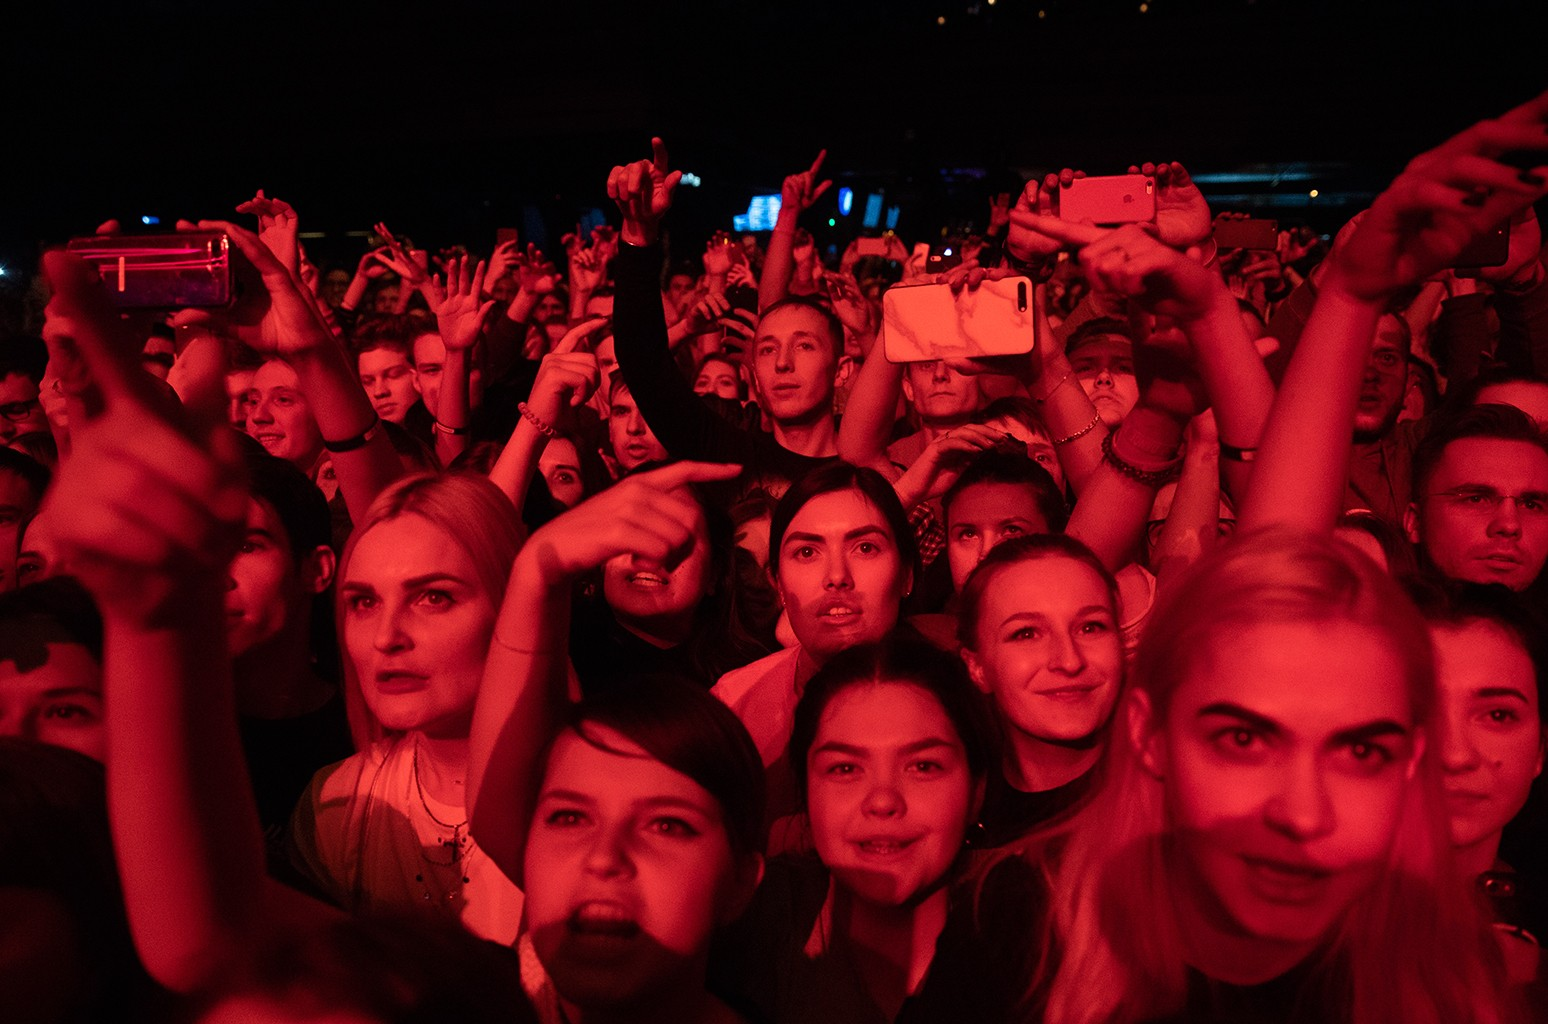 People cheer during a concert in support of rapper Husky, in Moscow on Dec. 26, 2018.